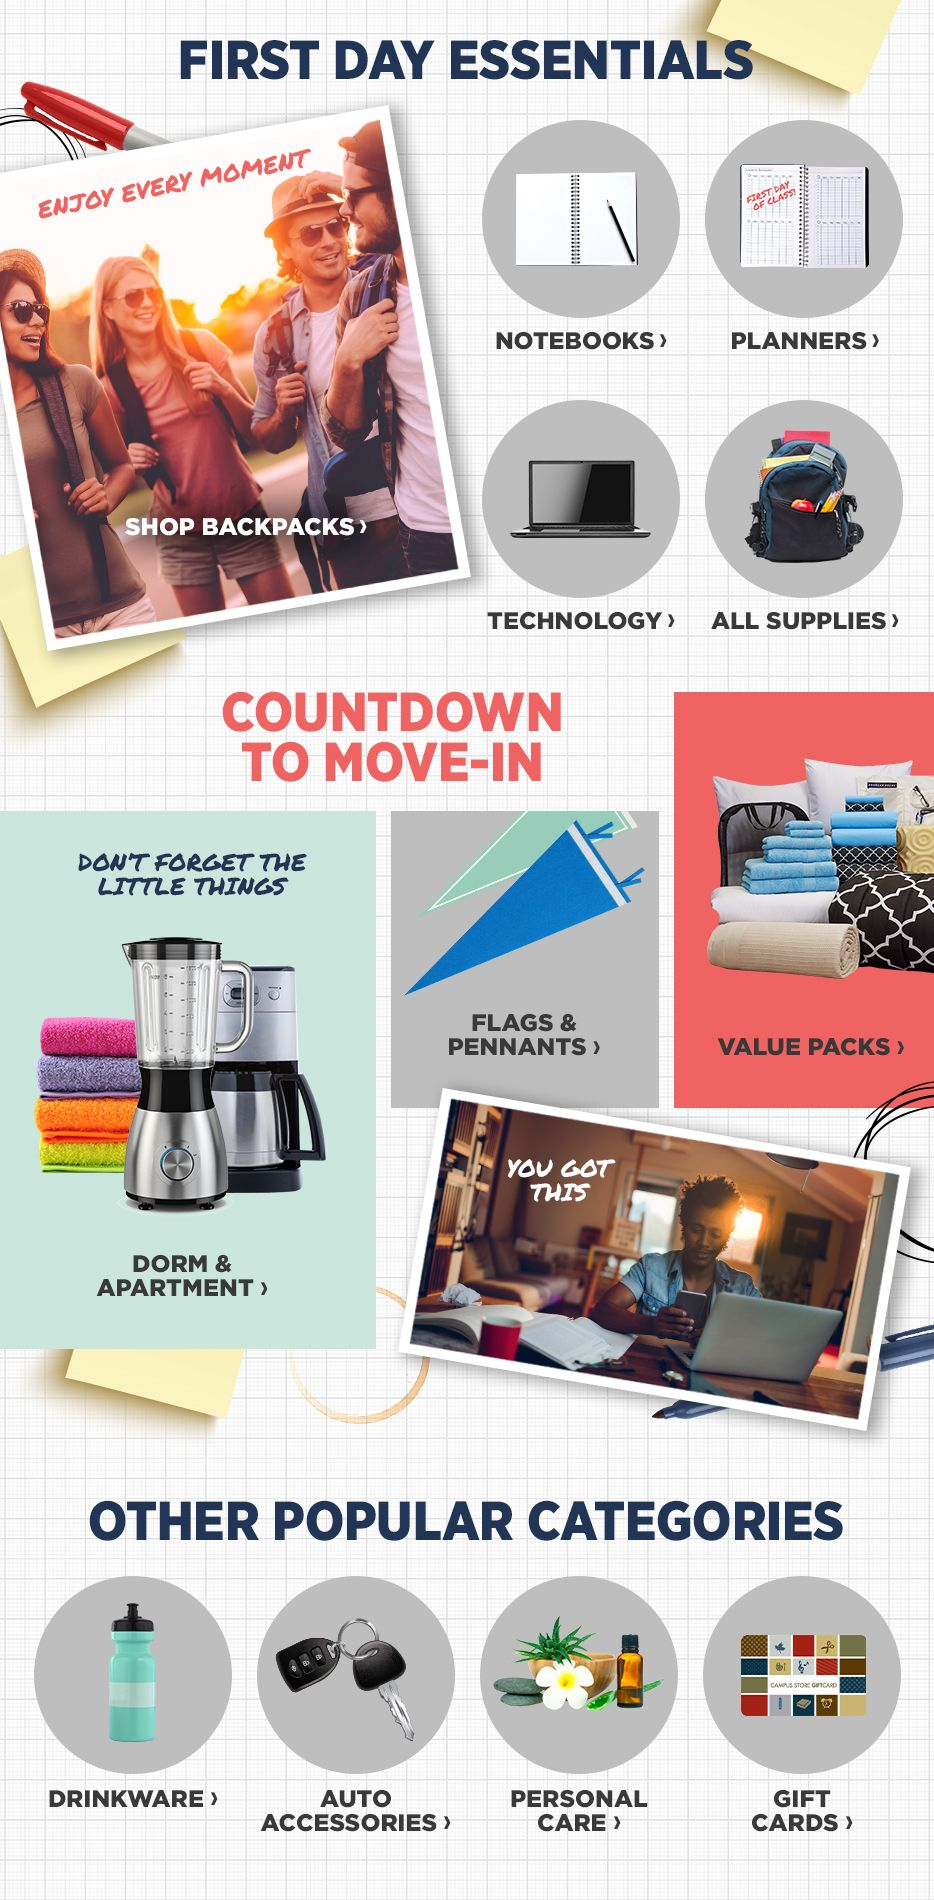 First Day Essentials. Shop Notebooks. Shop Planners. Shop Technology. Shop All Supplies. Countdown to Move-In. Shop Dorm & Apartment. Shop Flags & Pennants. Shop Value Packs. Other Popular Categories. Shop Drinkware. Shop Auto Accessories. Shop Personal Care. Shop Gift Cards.